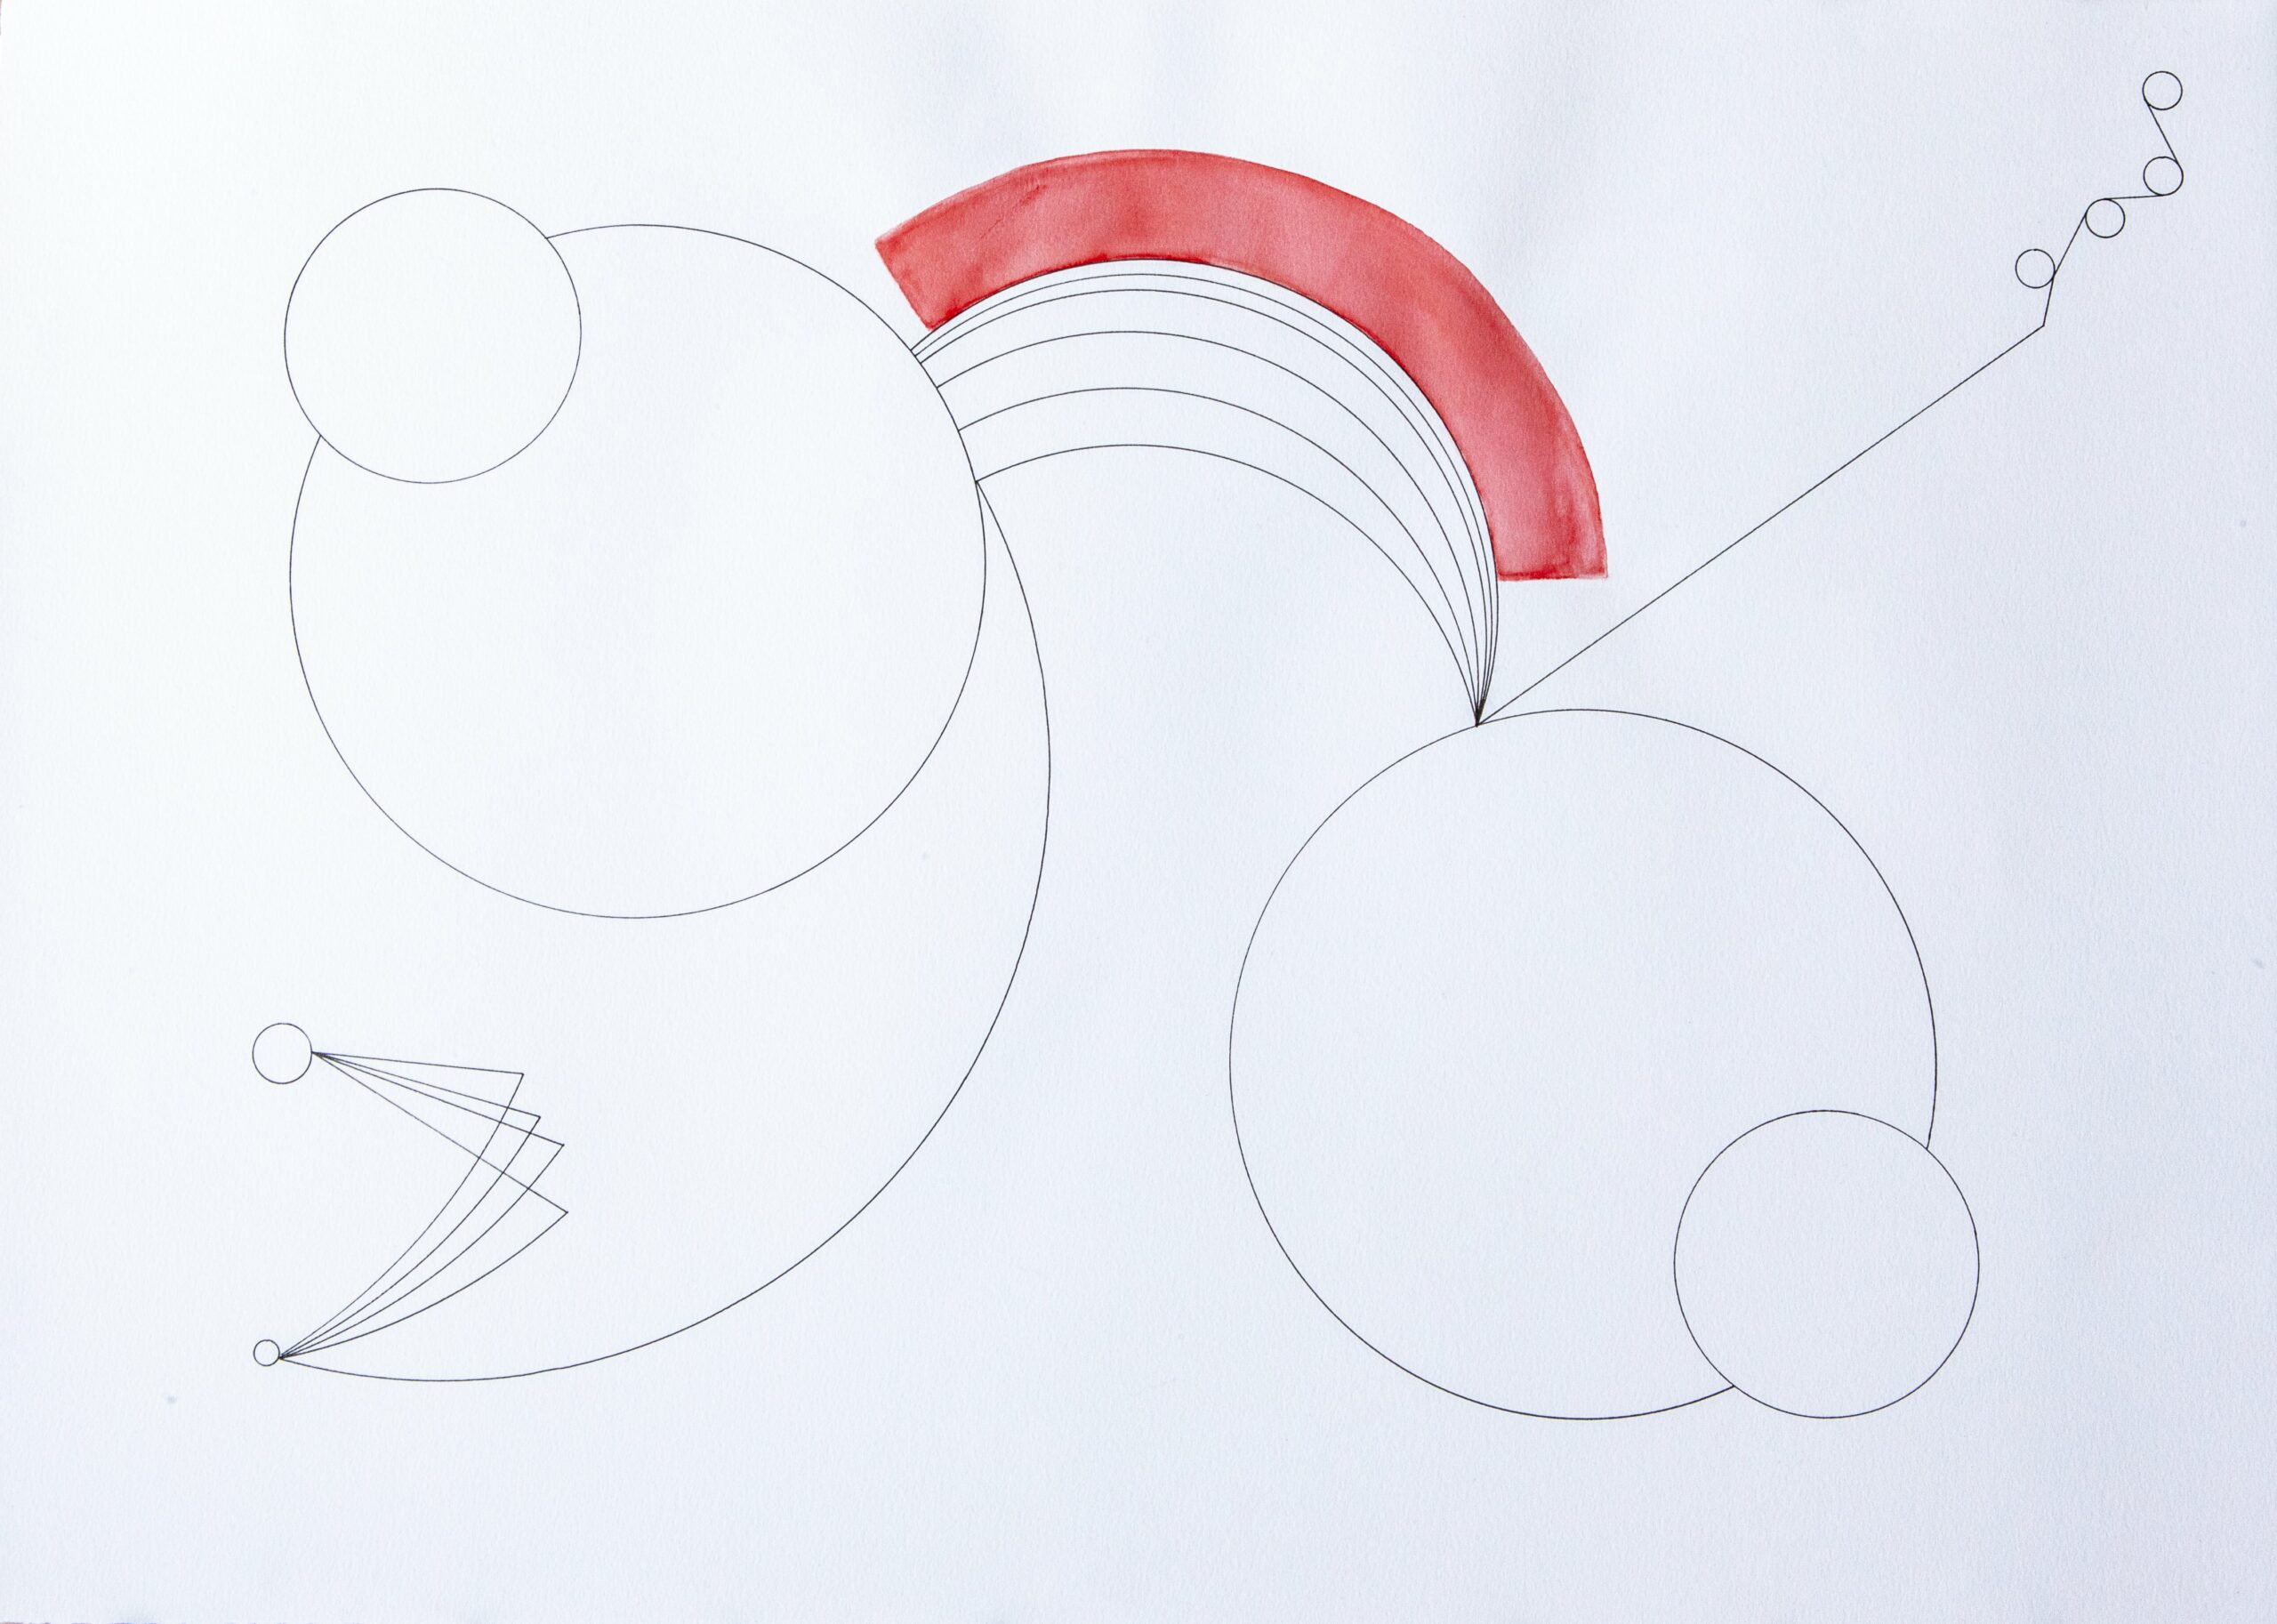 Abstract geometric line drawing with circles and a band of red